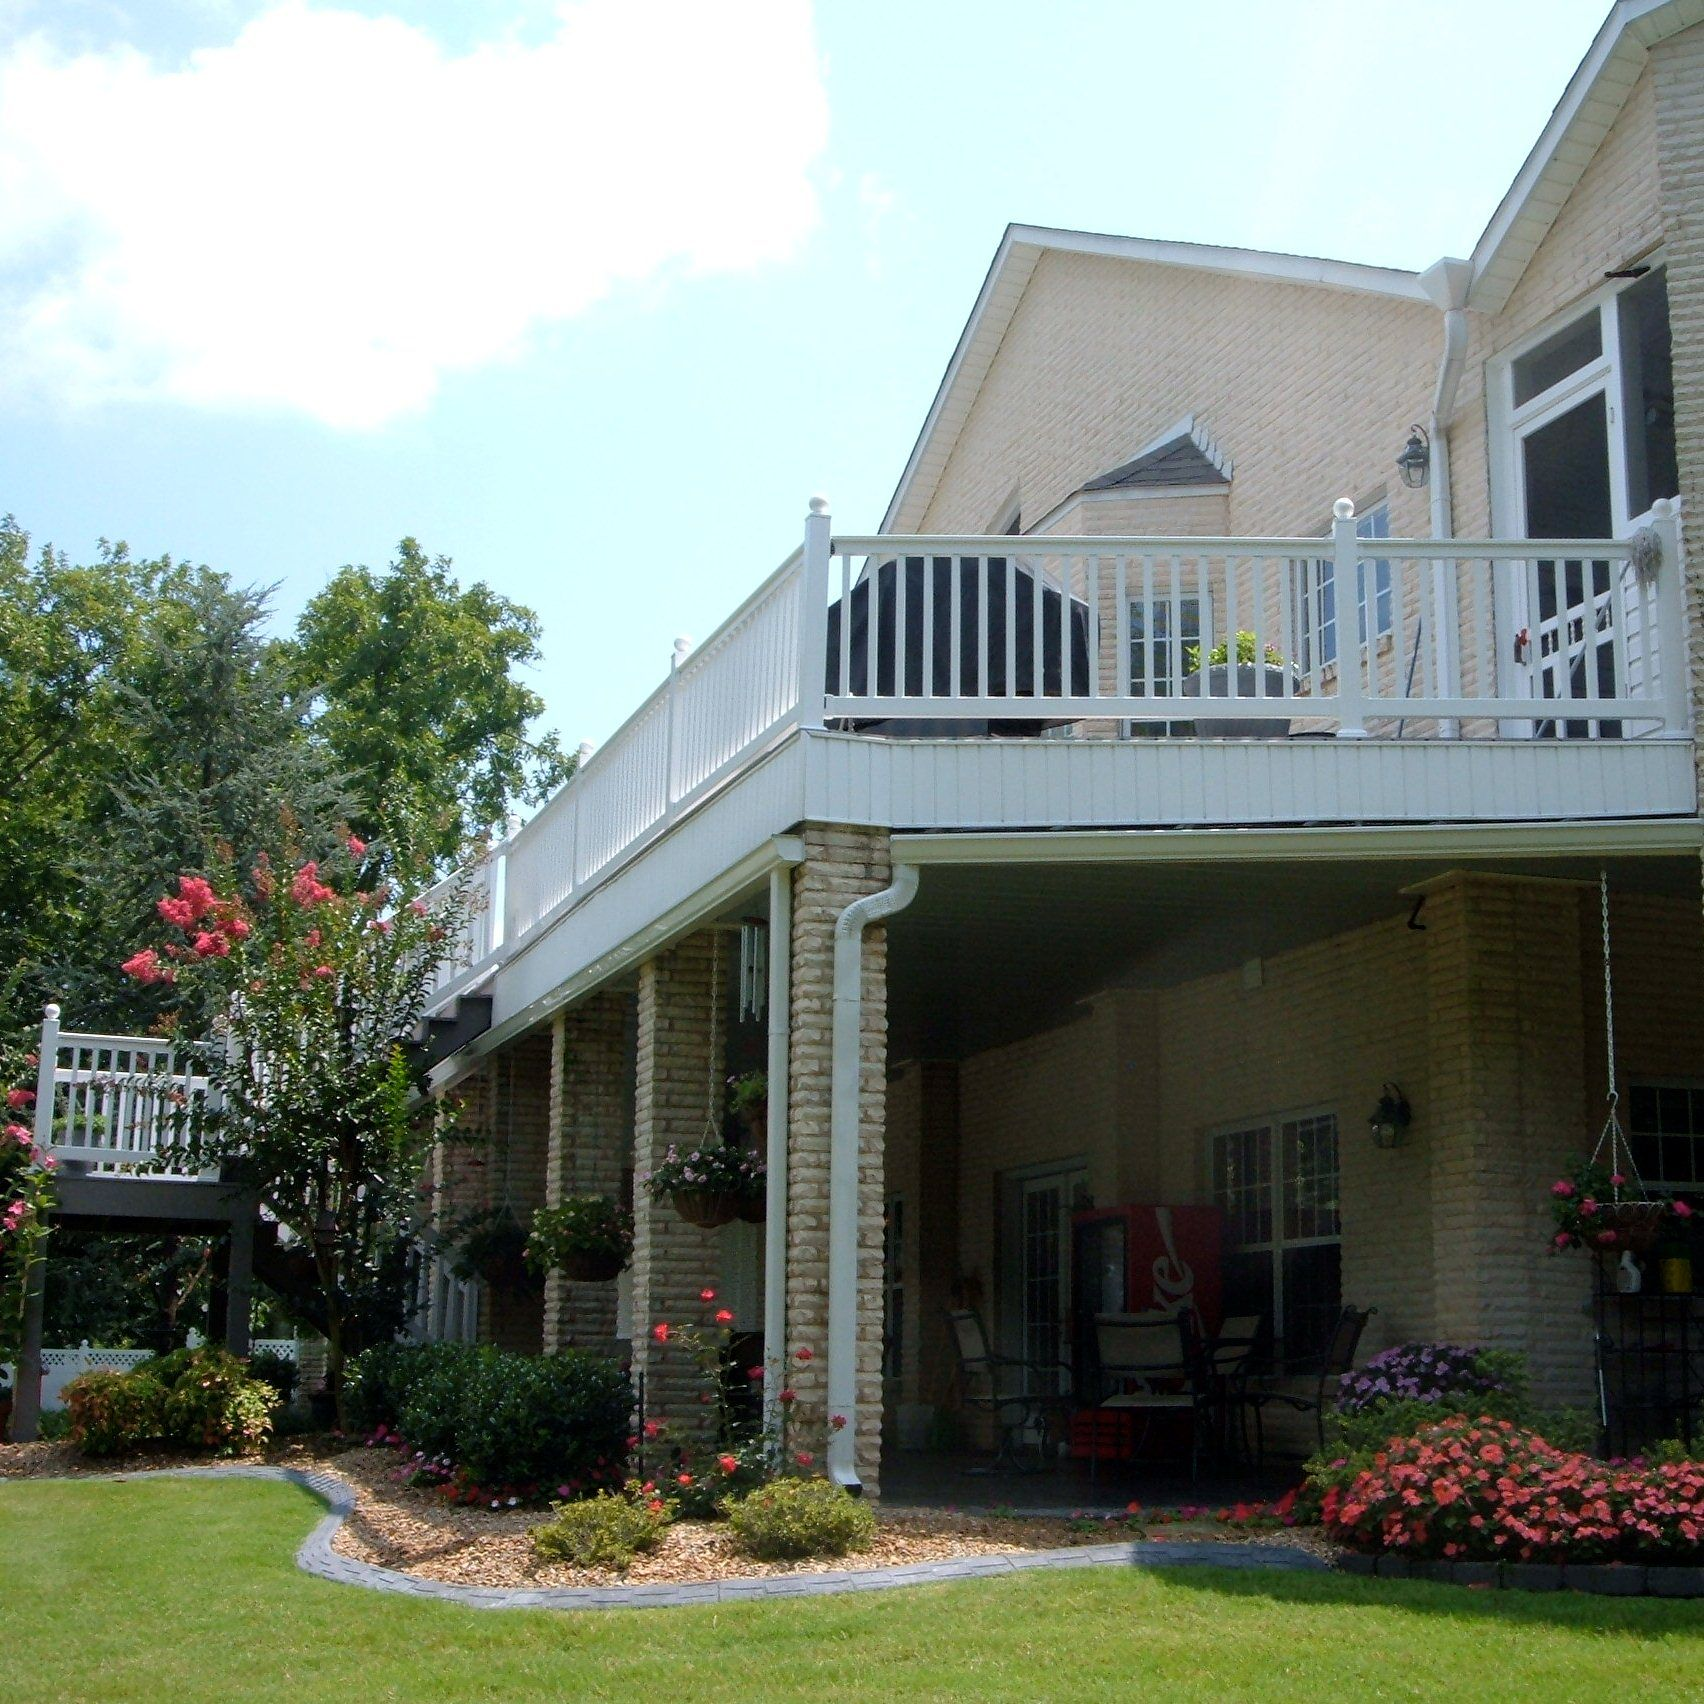 Yorkshire Vinyl Railing Is A Durable And Economical Solution For Your Deck, Patio  Or Porch